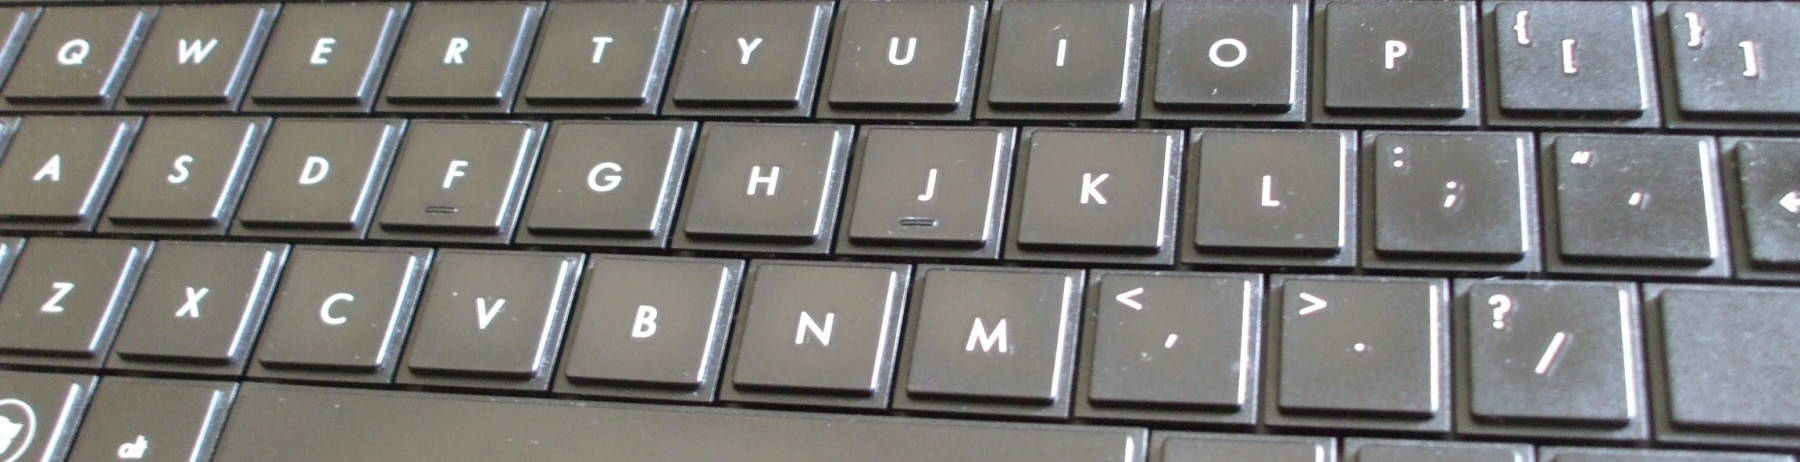 UNIX / Linux keyboard.